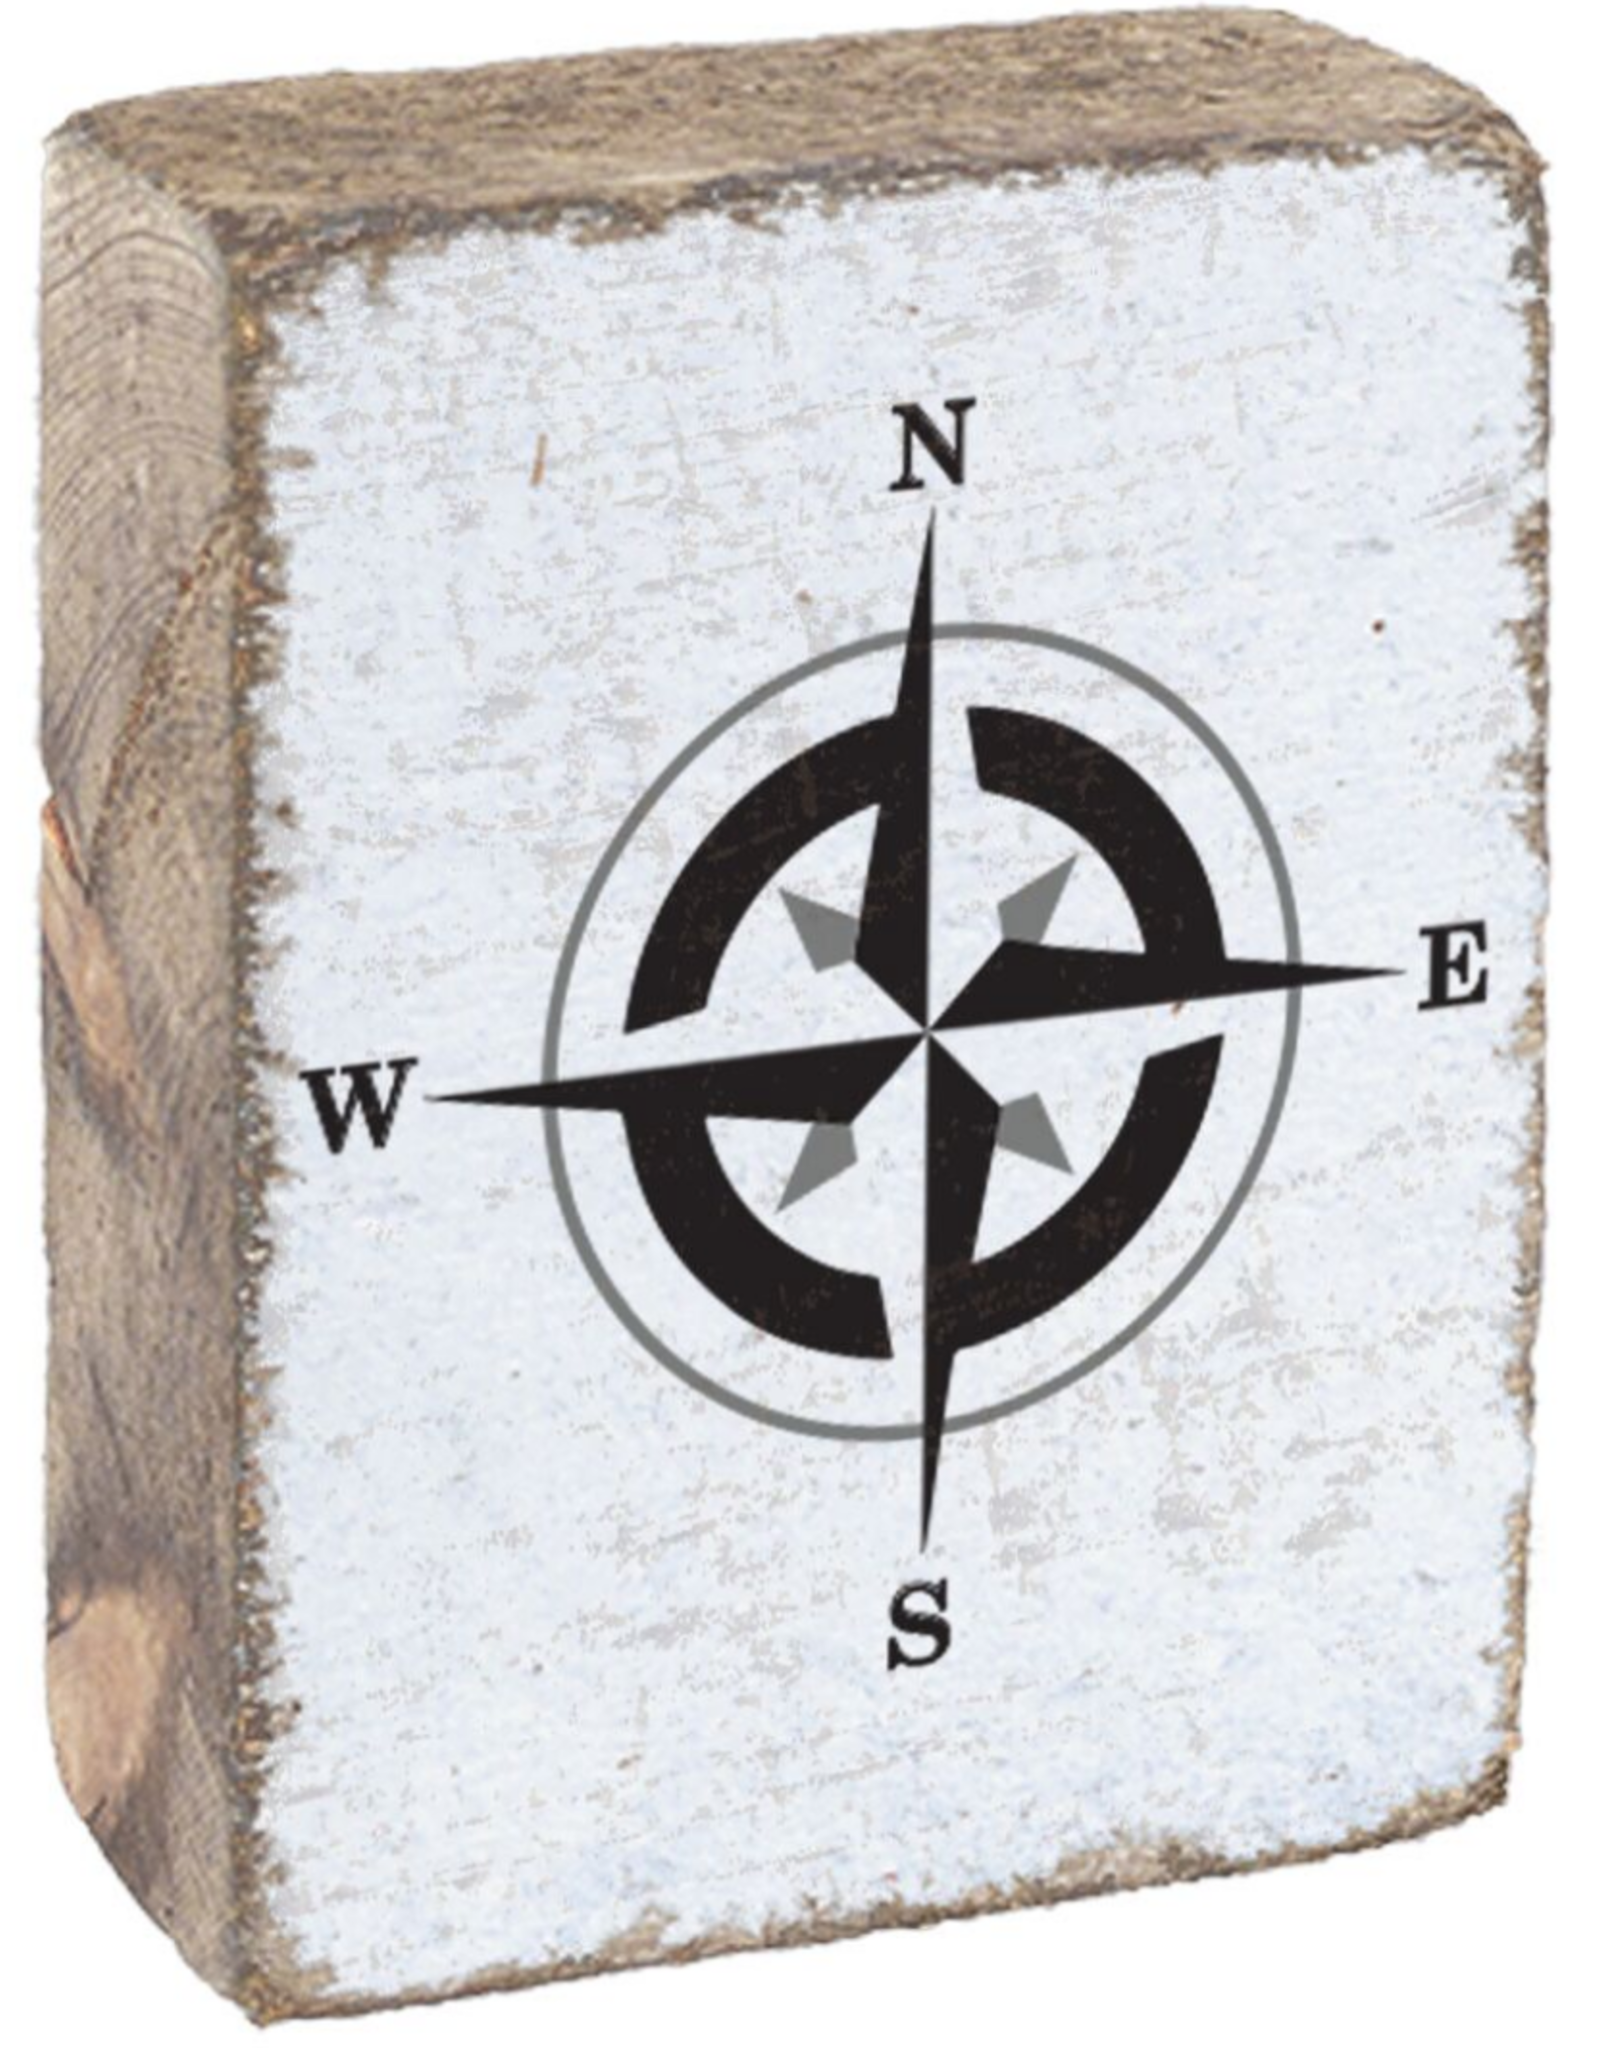 Rustic Marlin Rustic Marlin - Symbol Blocks Compass